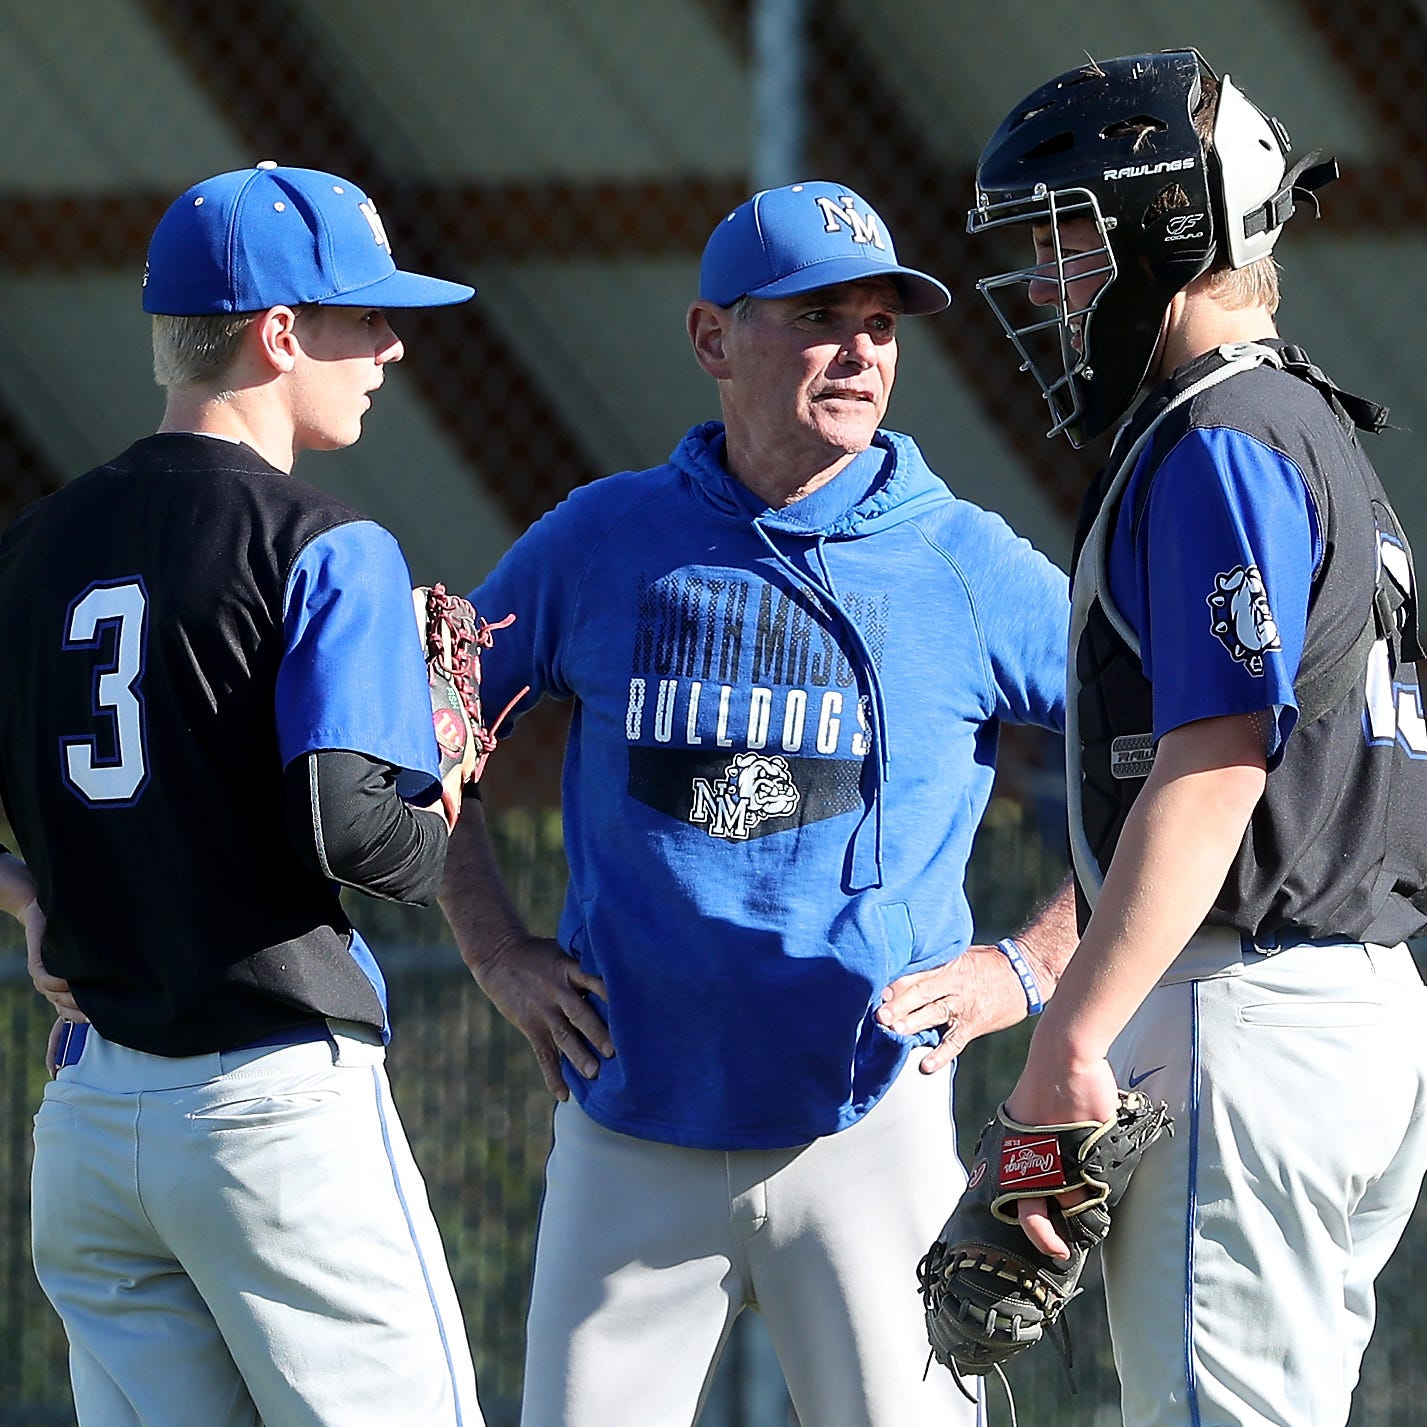 North Mason coach Geyer balancing baseball, cancer fight